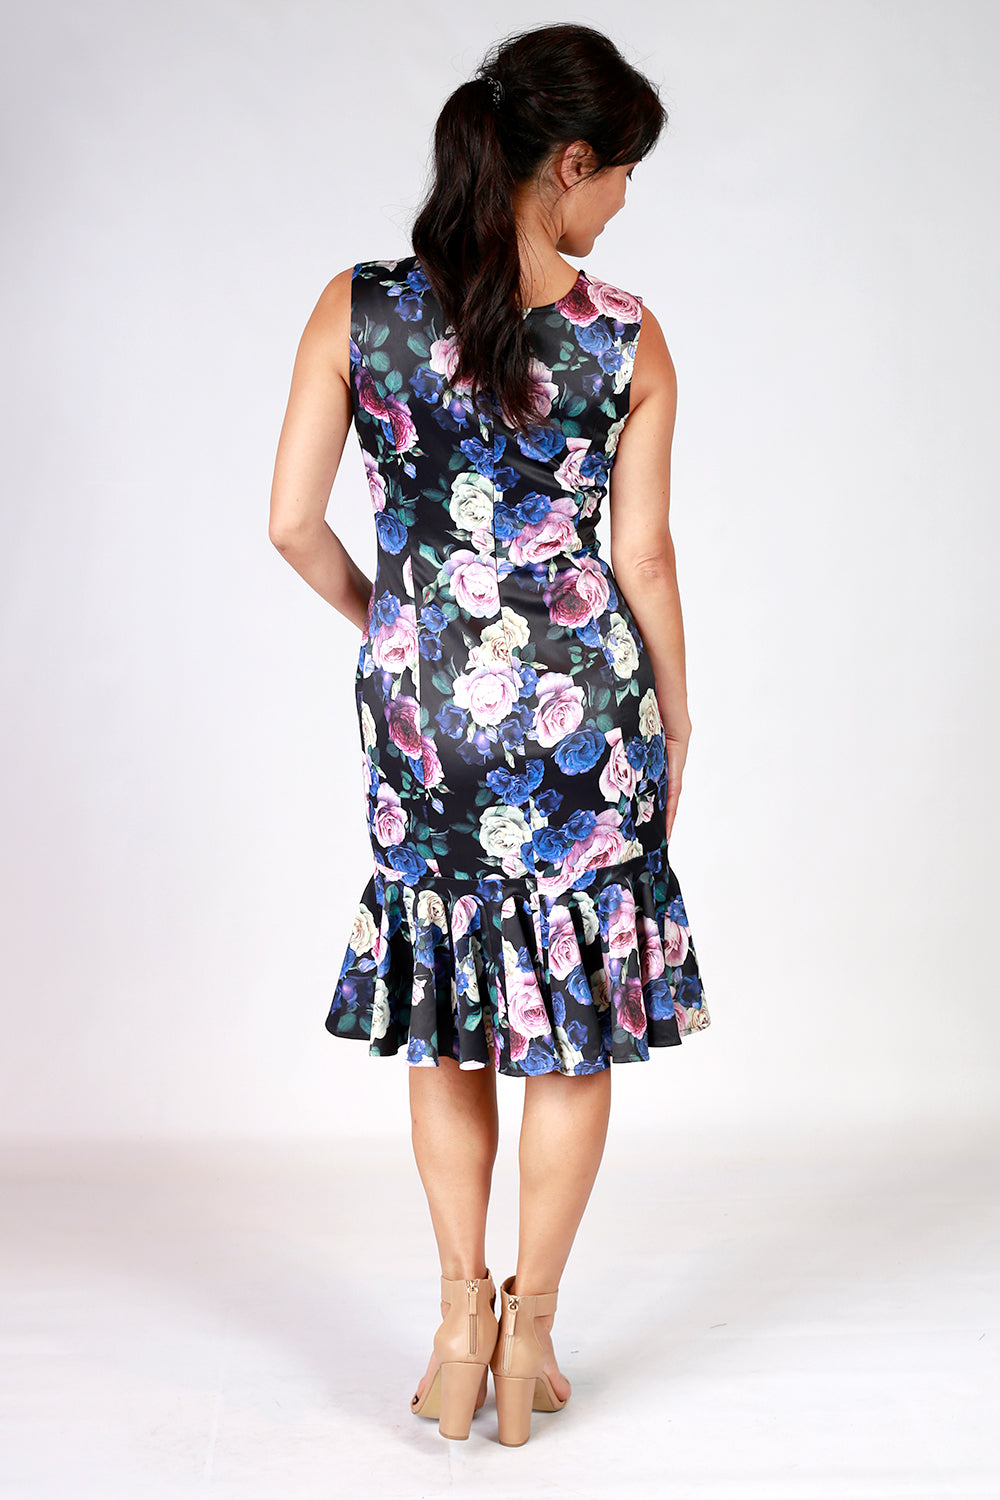 Lost Consignment Dress | Floral Dress | Return To Sender | New Zealand Designer | New Zealand Fashion | Annah Stretton